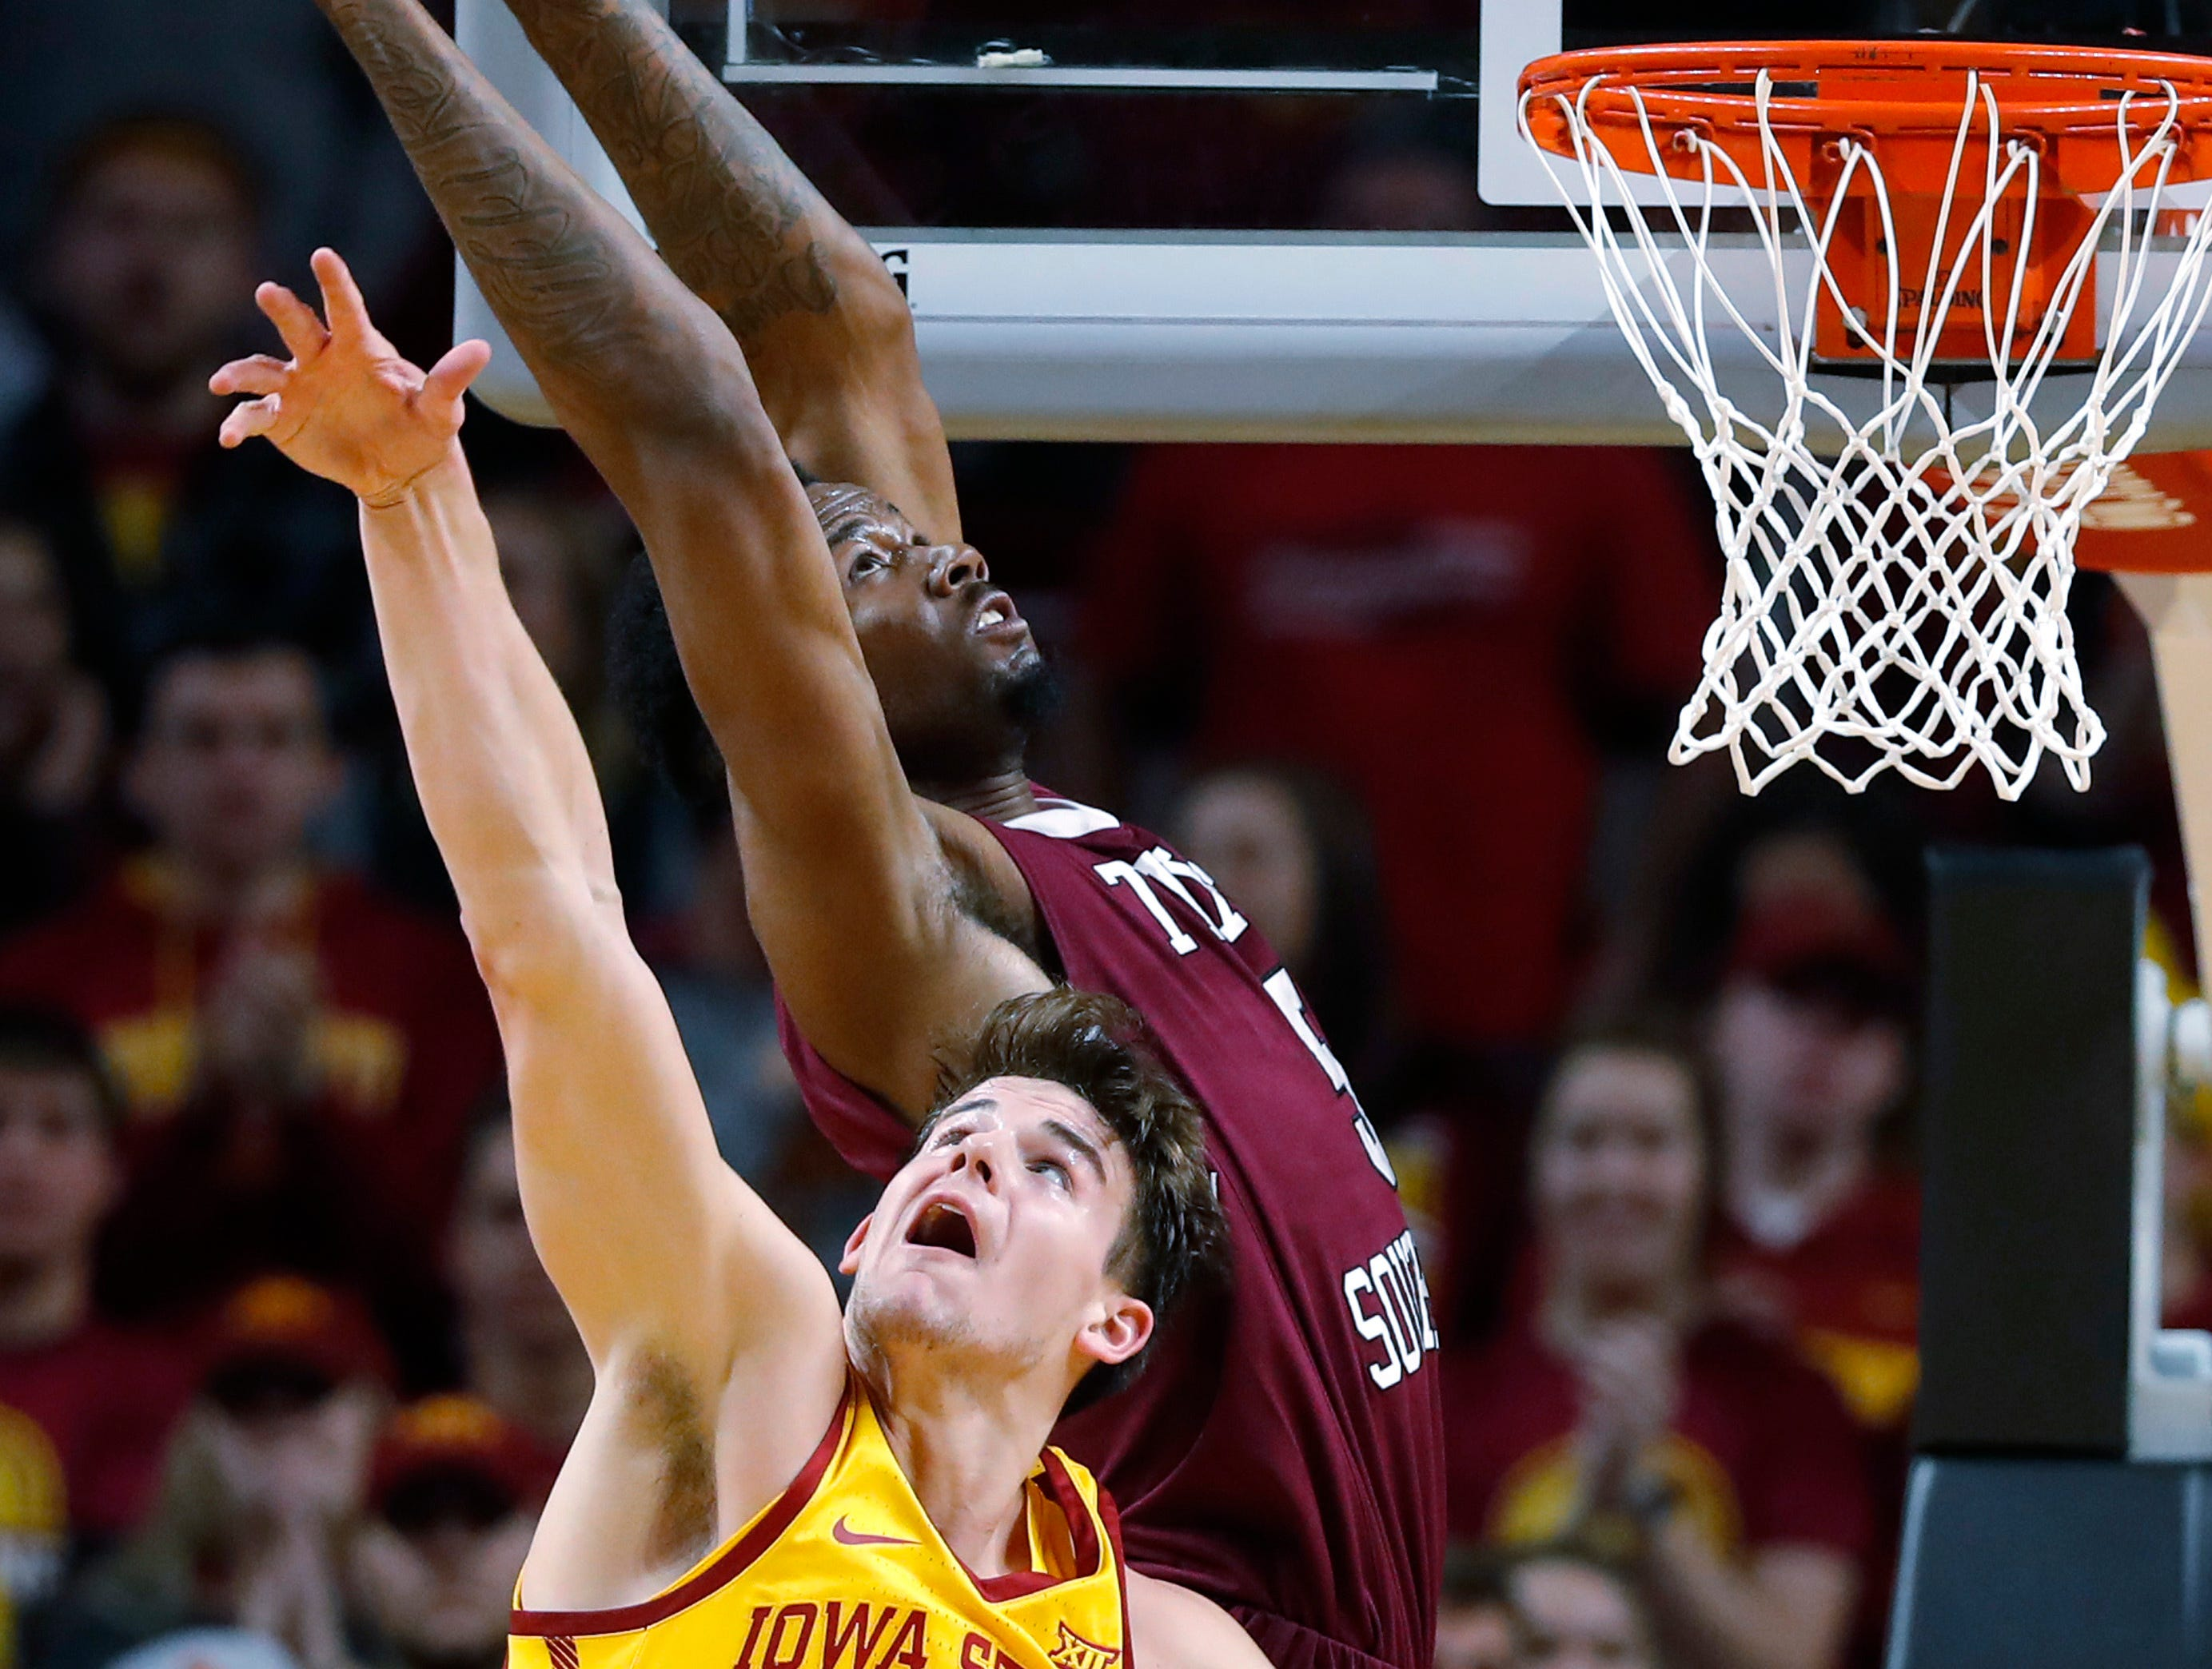 Texas Southern center Trayvon Reed grabs a rebound over Iowa State forward Michael Jacobson (12) during the first half of an NCAA college basketball game, Monday, Nov. 12, 2018, in Ames, Iowa.